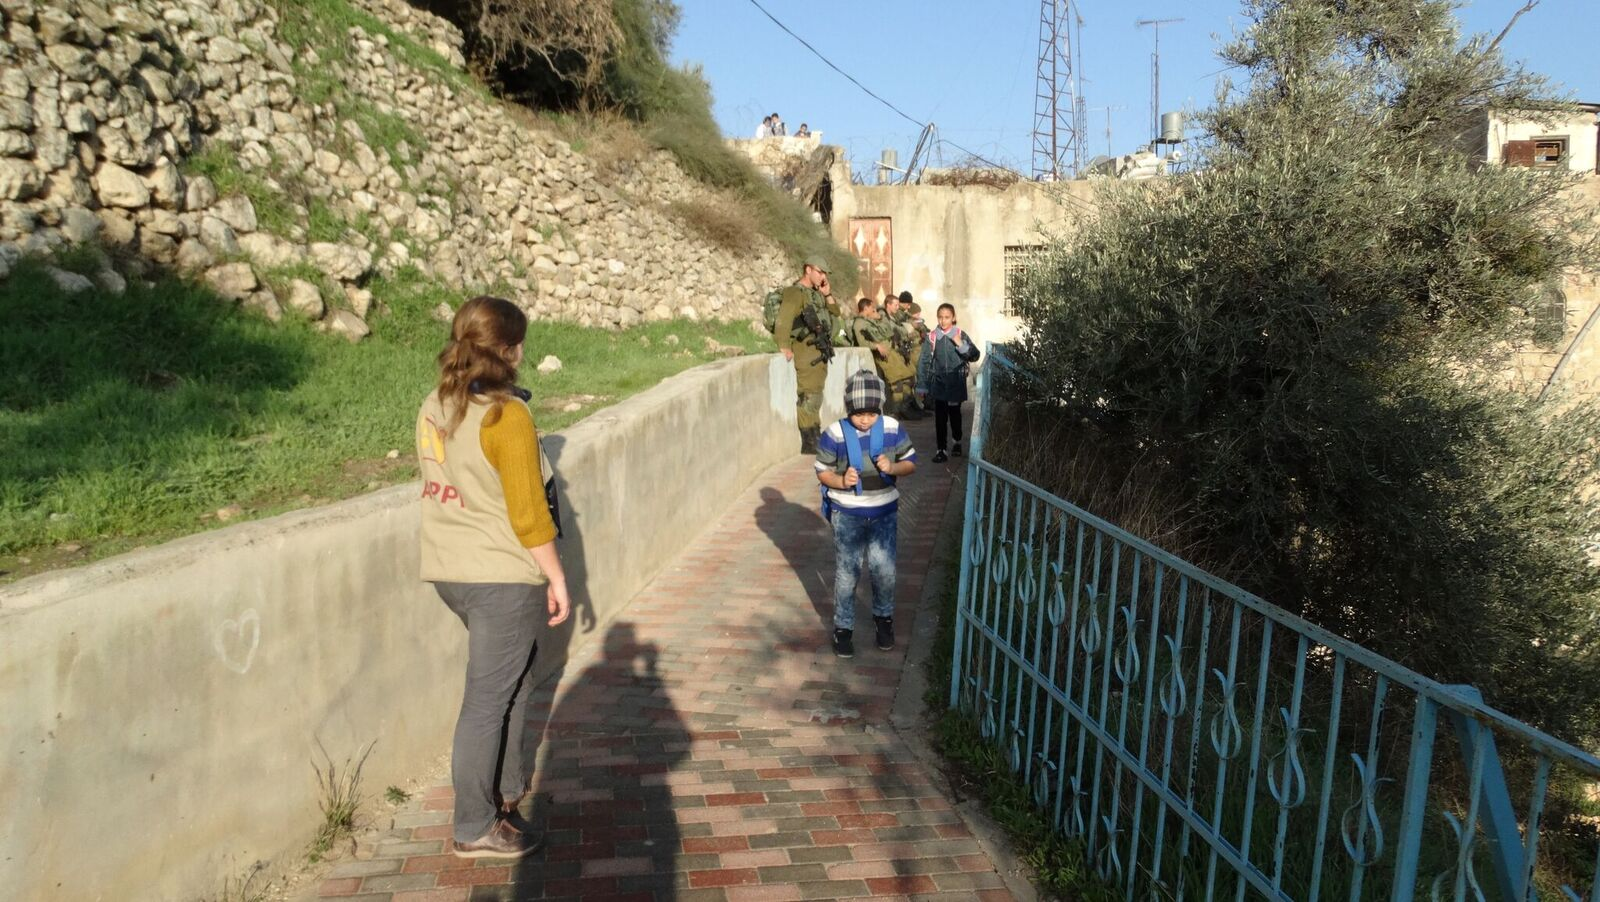 Palestinian schoolchildren encouraged by human rights monitors, pass by Israeli soldiers